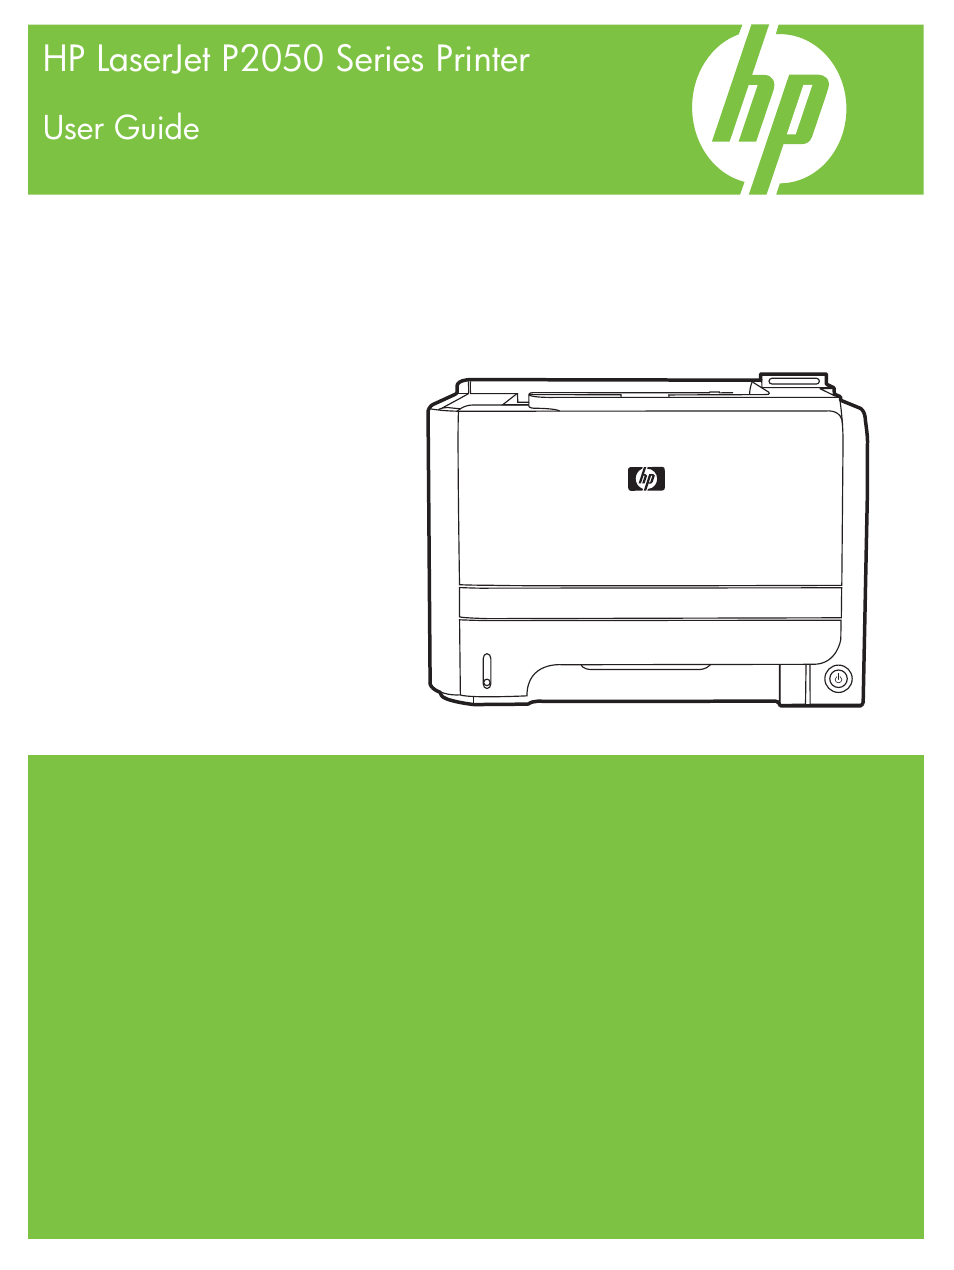 HP LaserJet P2055dn User Manual | 176 pages | Also for: LaserJet P2055  series, LaserJet P2050